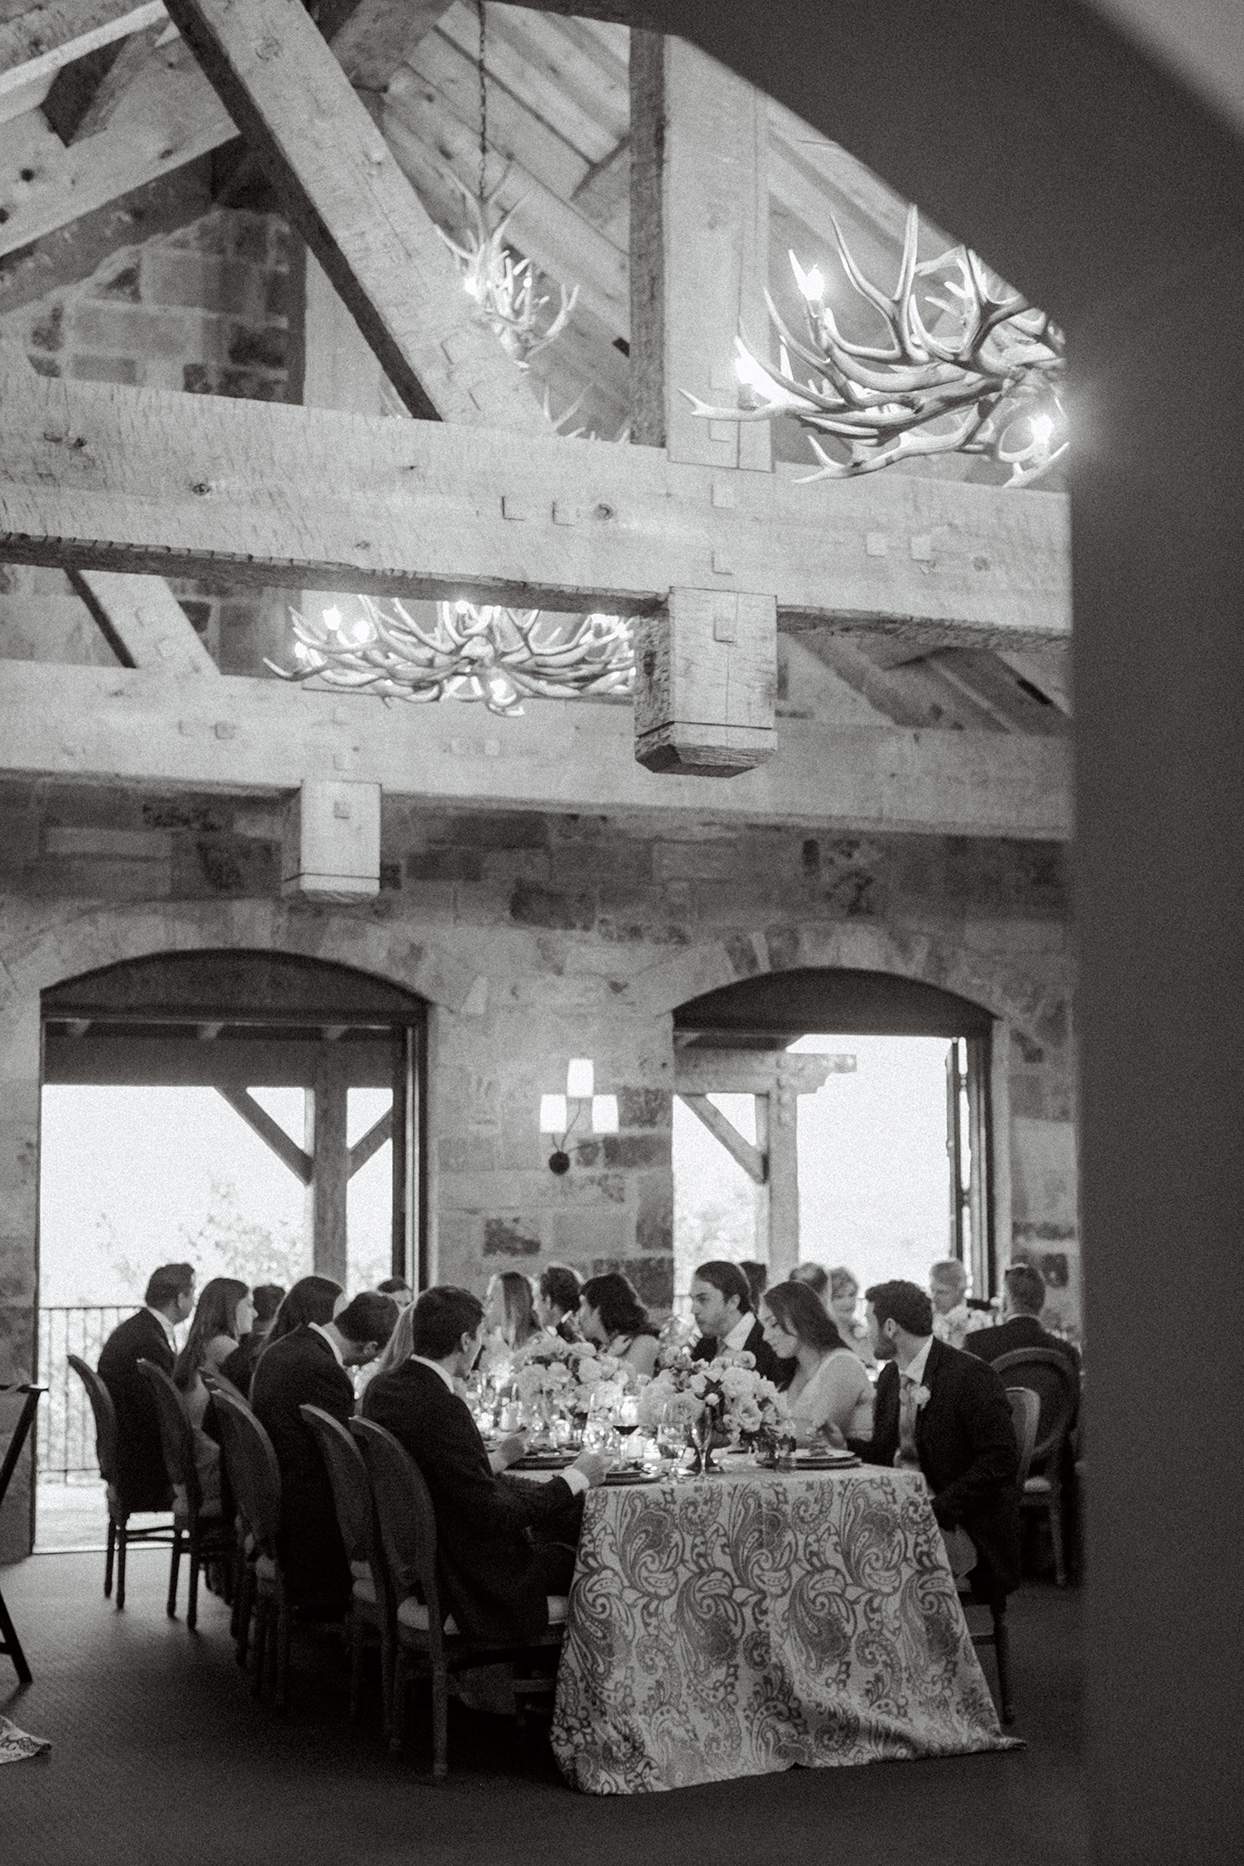 intimate wedding reception inside with long tables